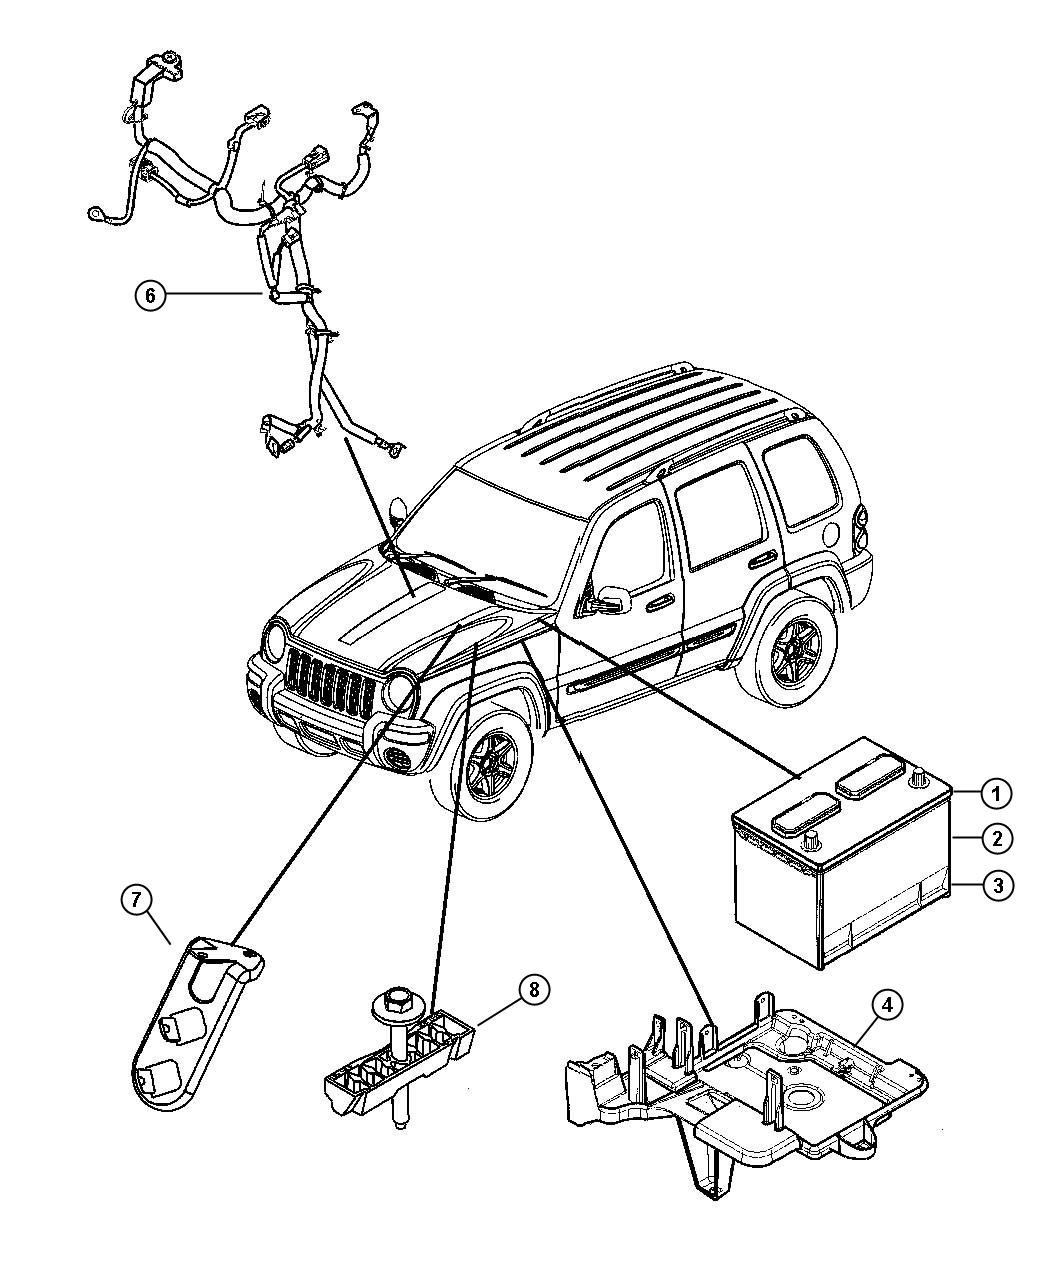 2007 Jeep Liberty Wiring. Used for: alternator and battery